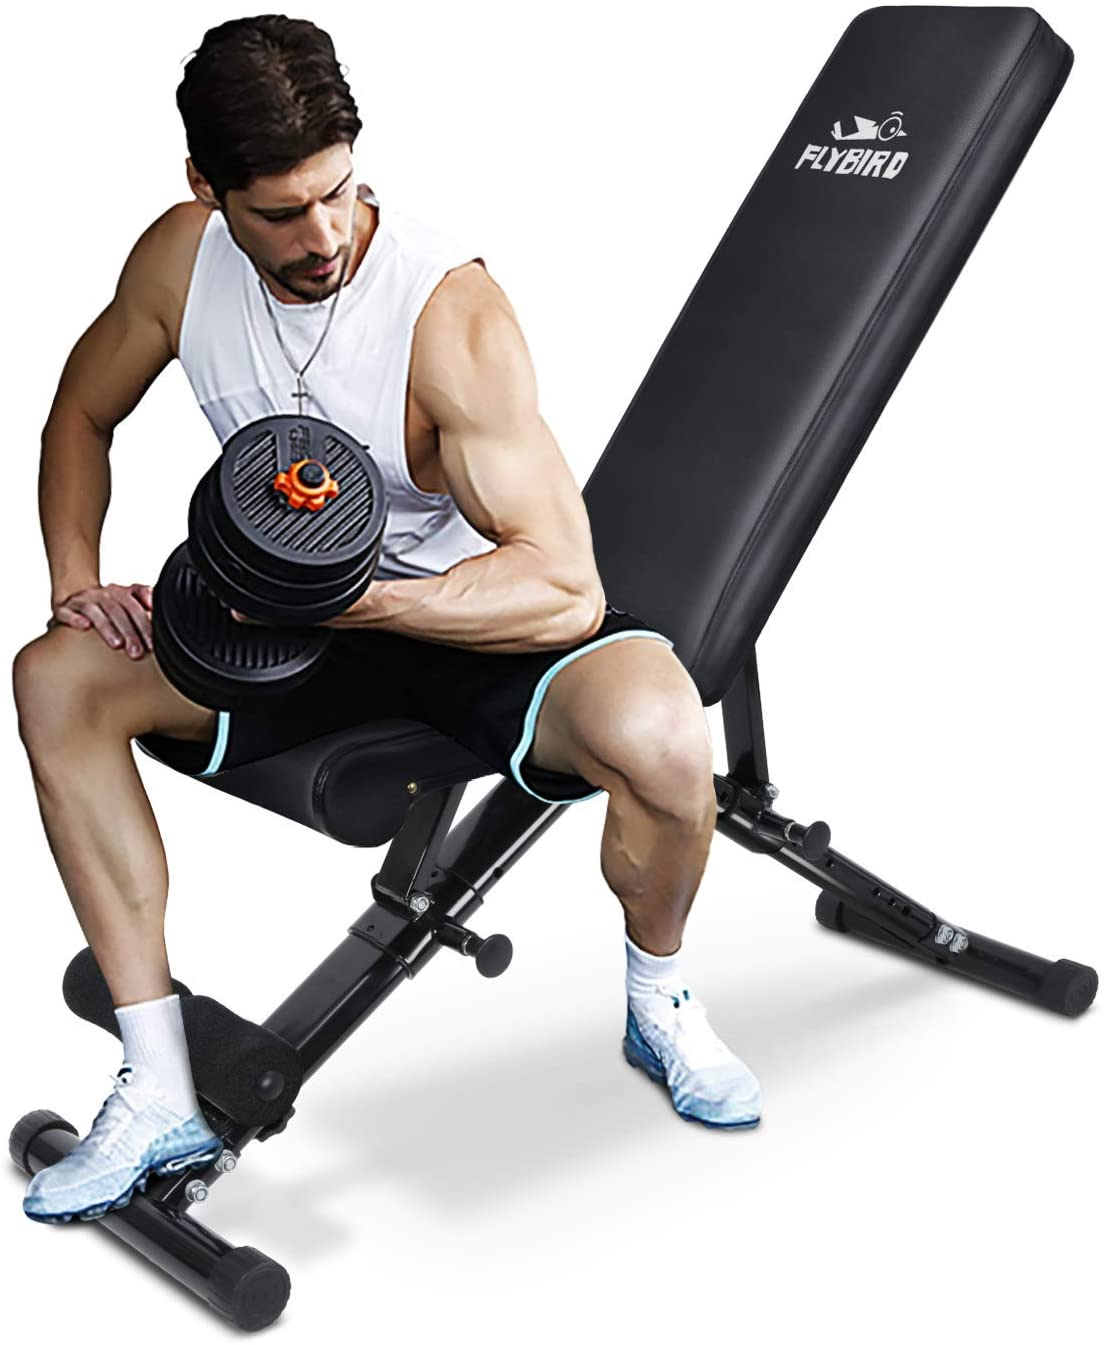 Best portable weight-bench: FLYBIRD Weight Bench 2020 Version